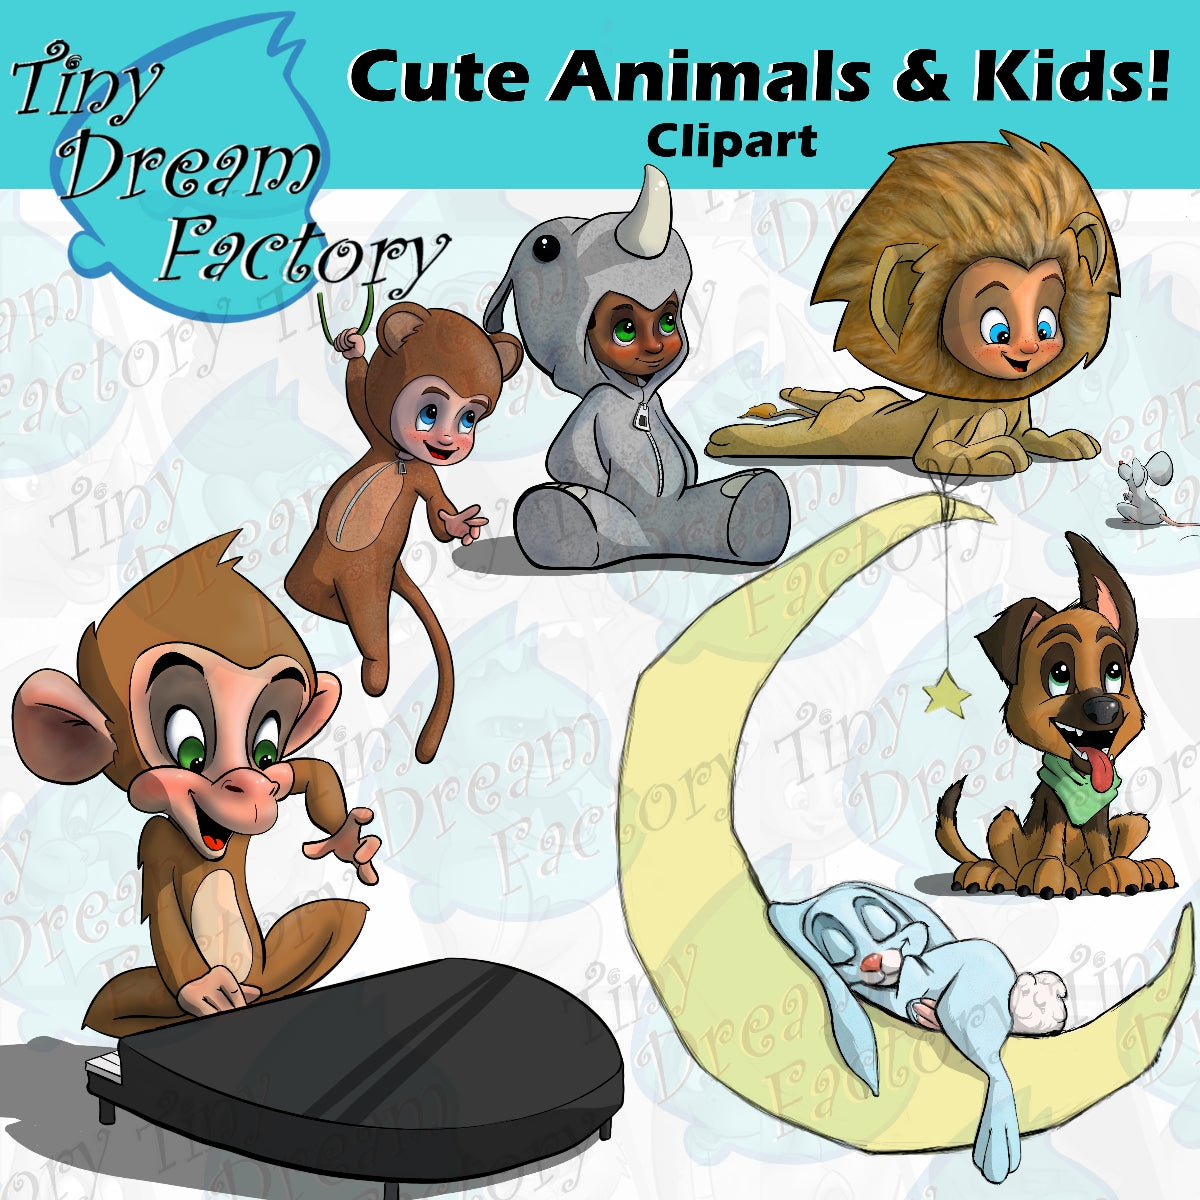 Cute Animals & Kids Clipart!